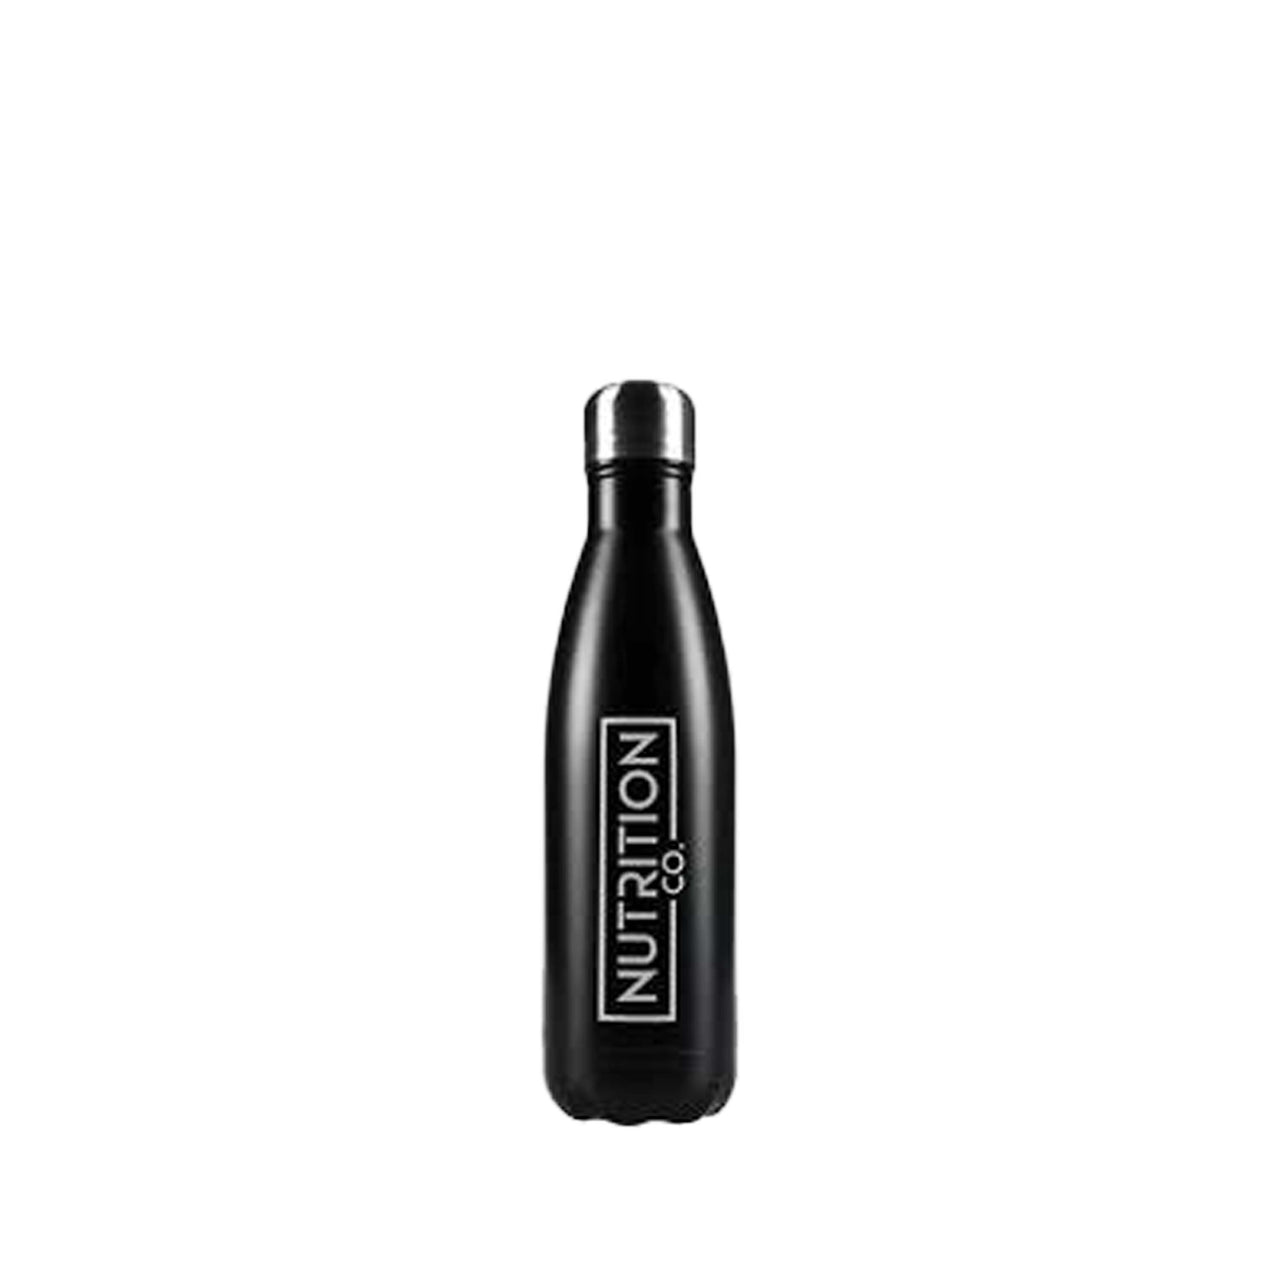 Nutrition Co Stainless Waterbottles, Nutrition Co Australia - Nutrition Co Australia